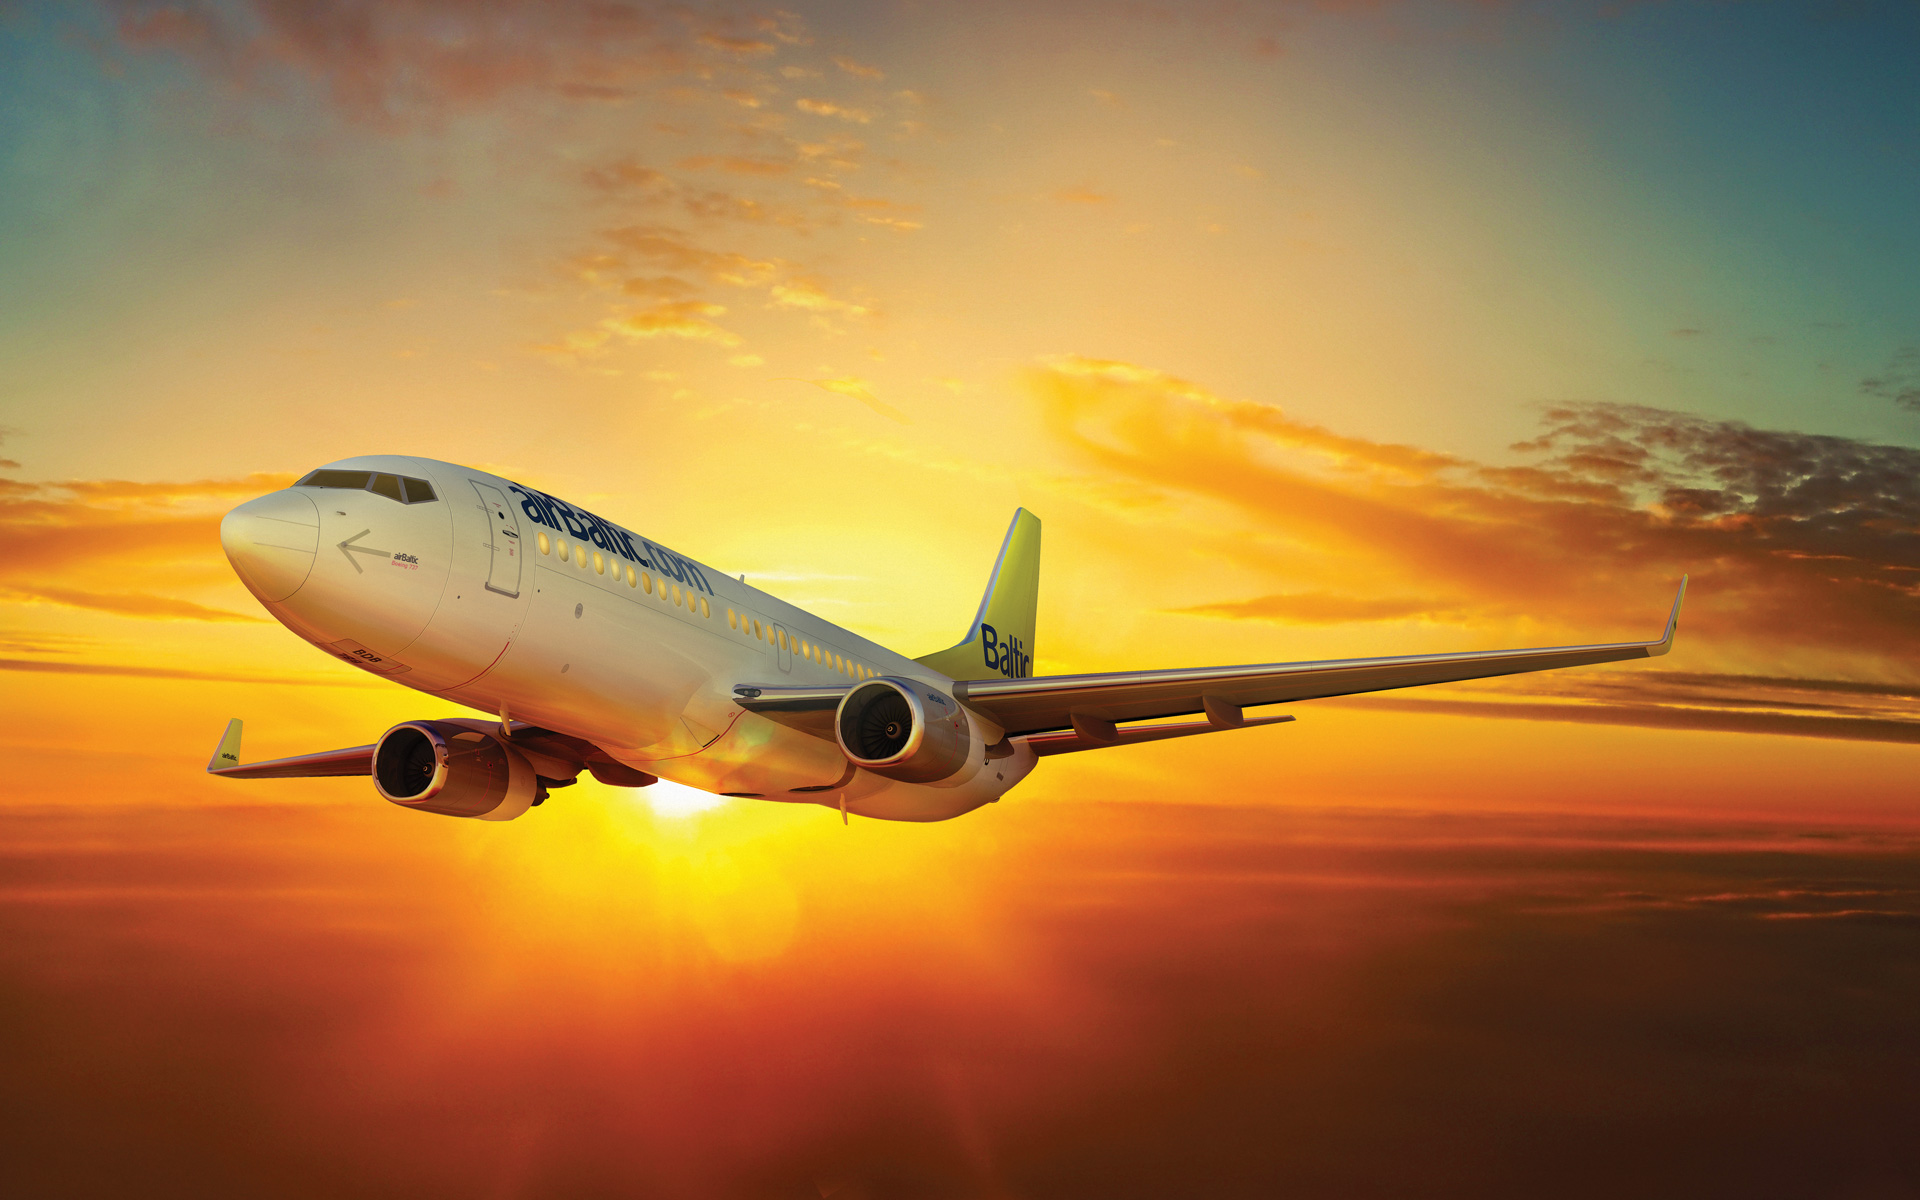 Wallpapers Airbaltic Planes Airbaltic